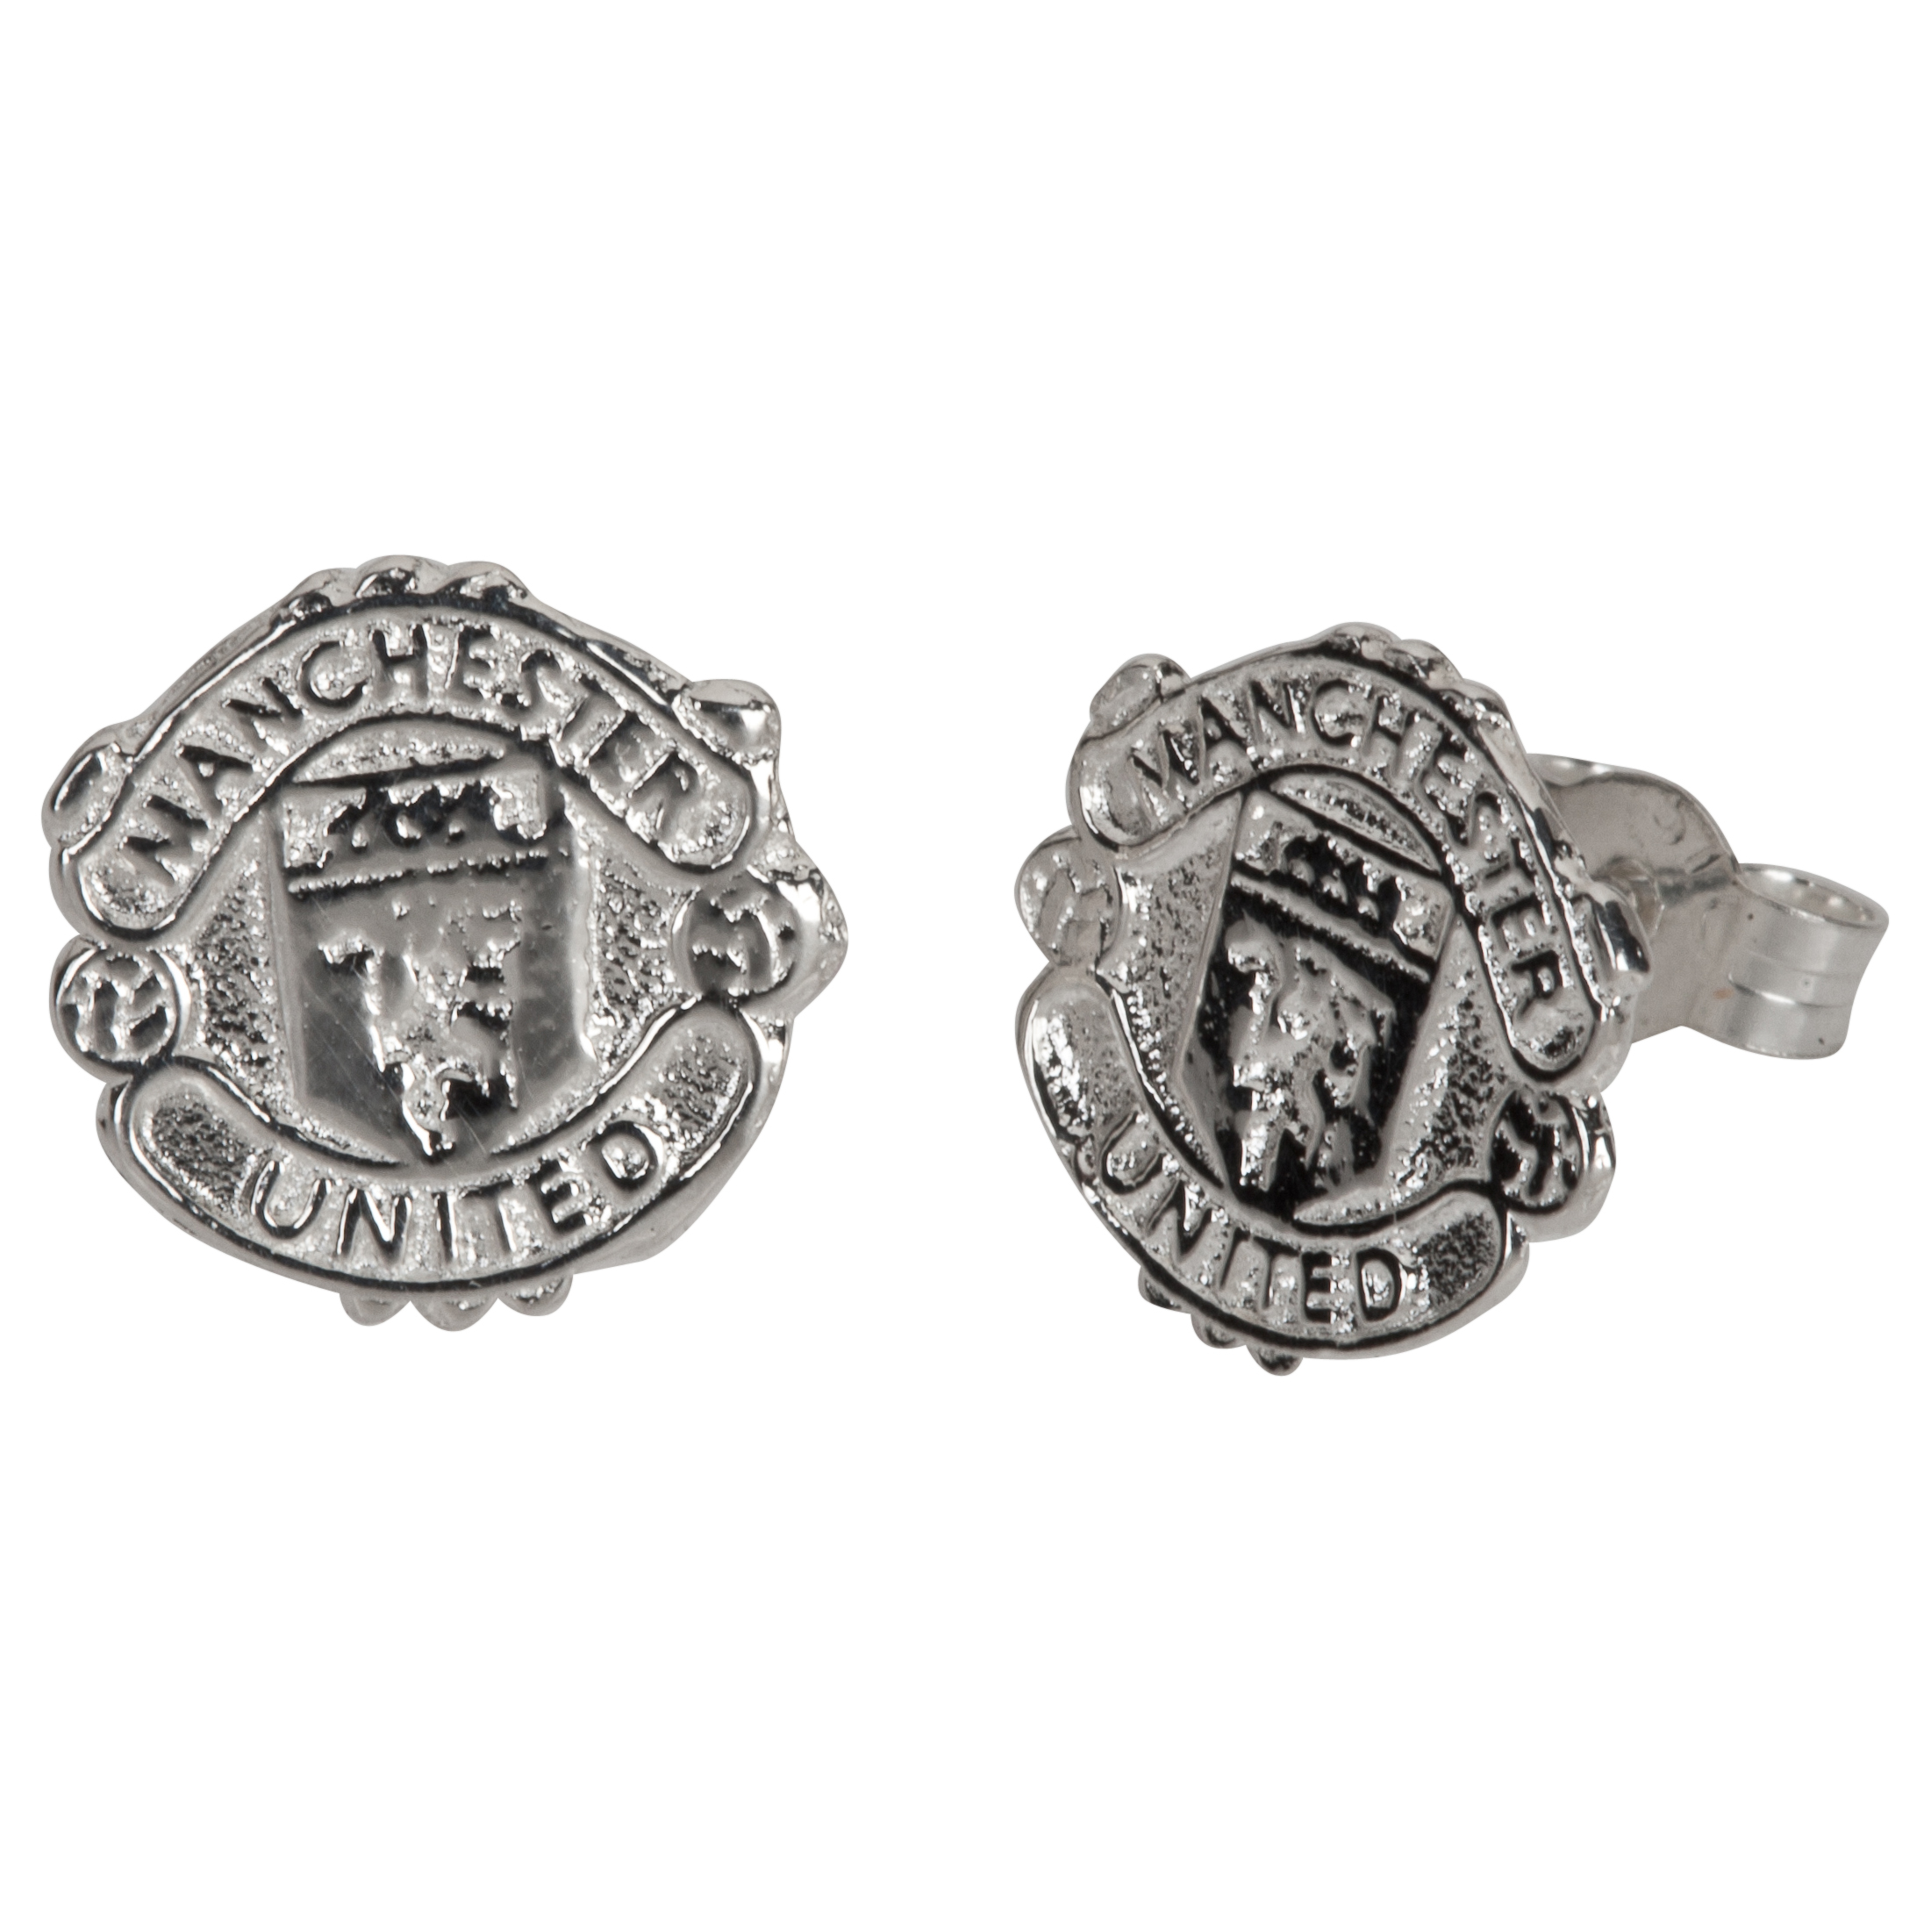 Manchester United Crest Earrings - Pair - Sterling Silver